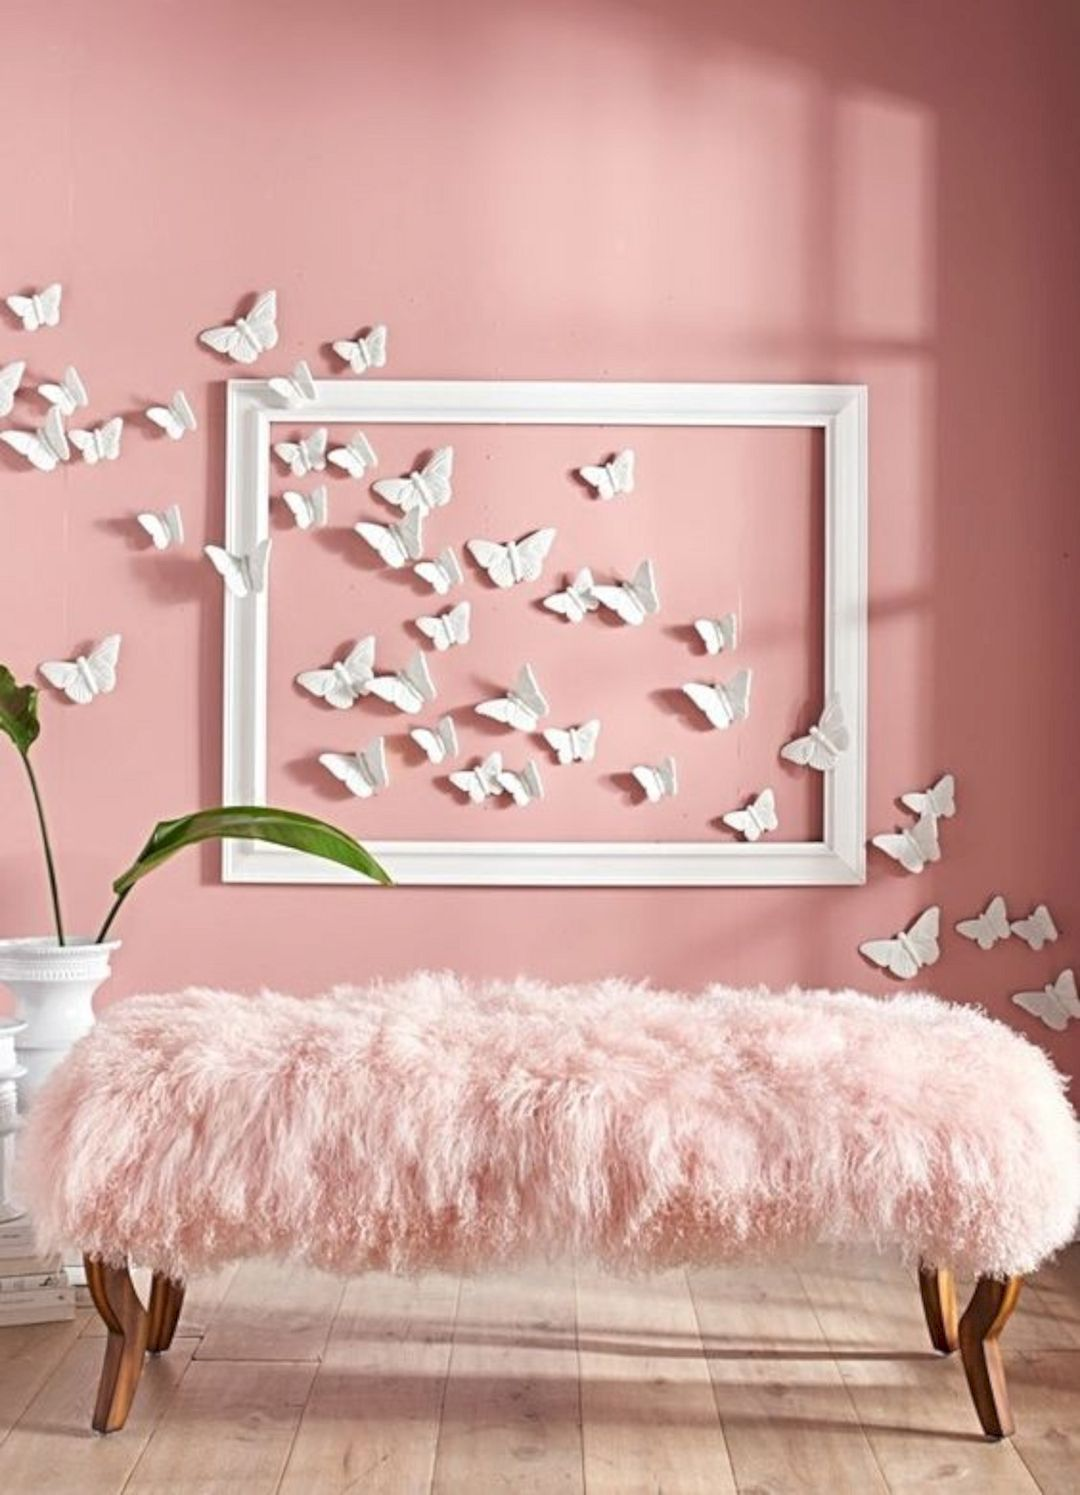 15 Ways To Make Your Walls Beautiful With Butterfly Decorations